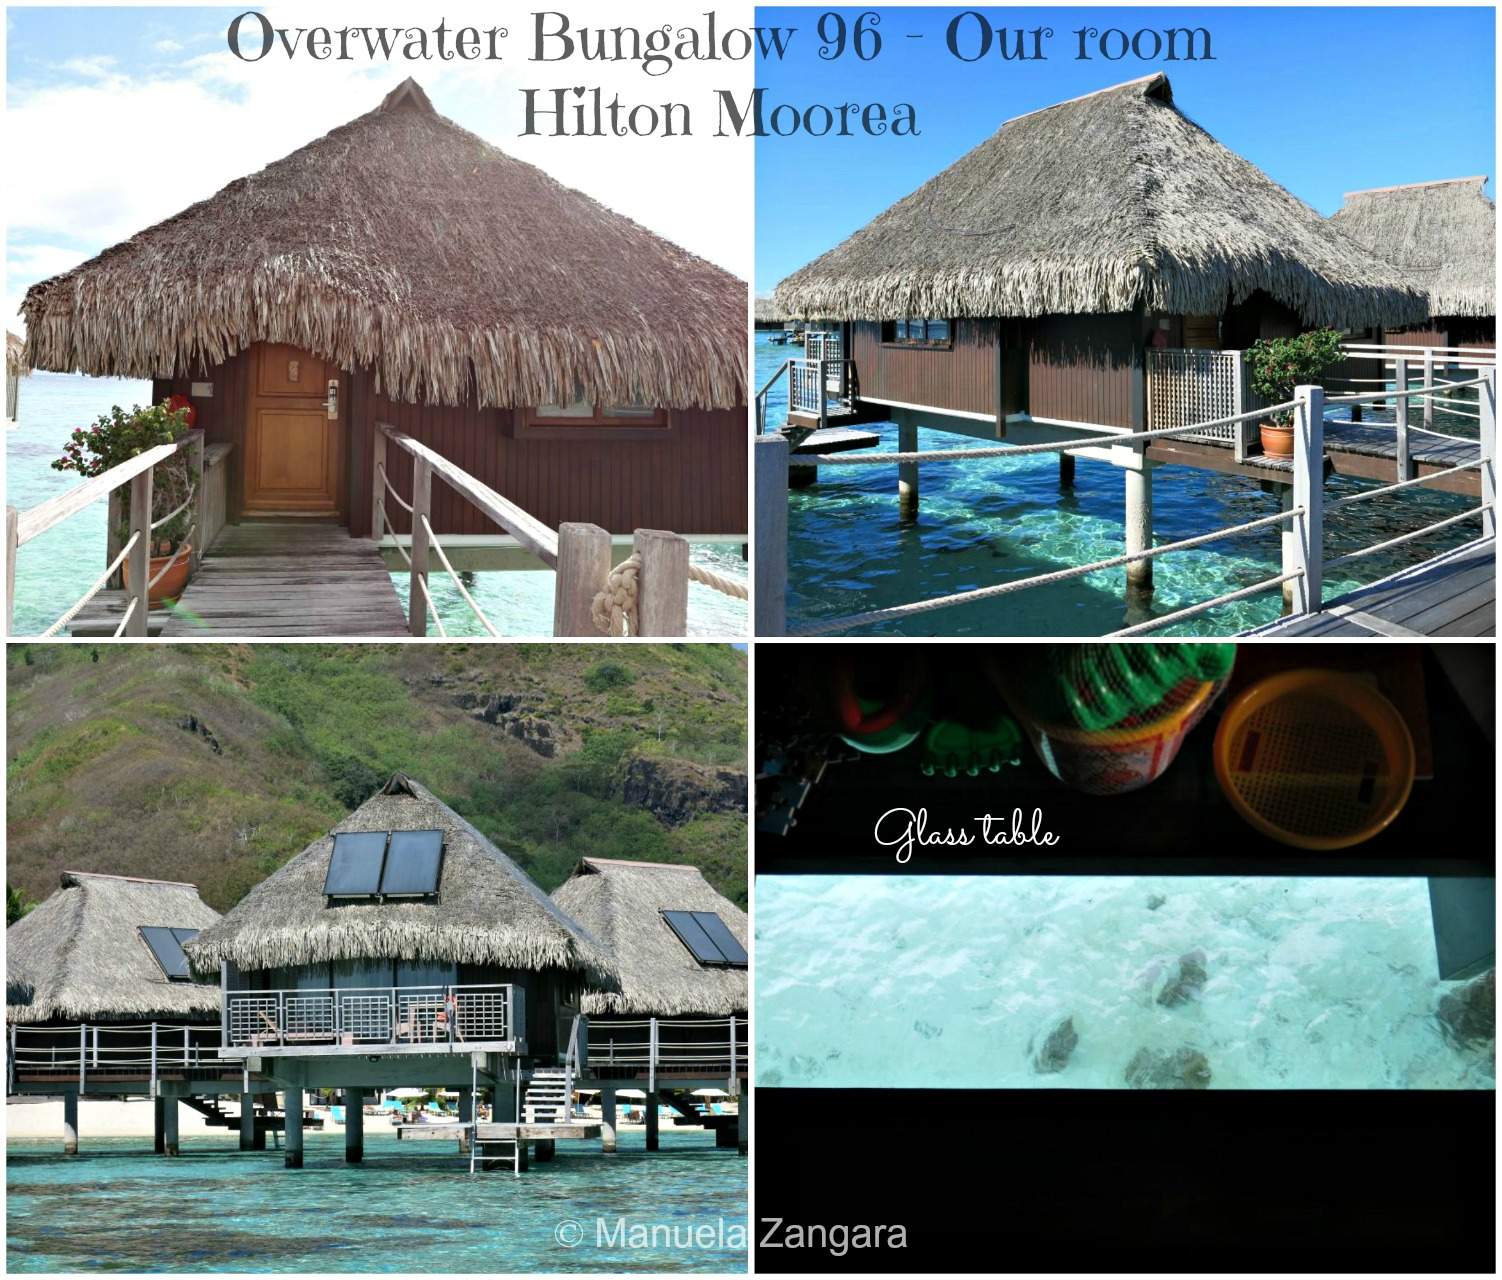 Our room Overwater 96